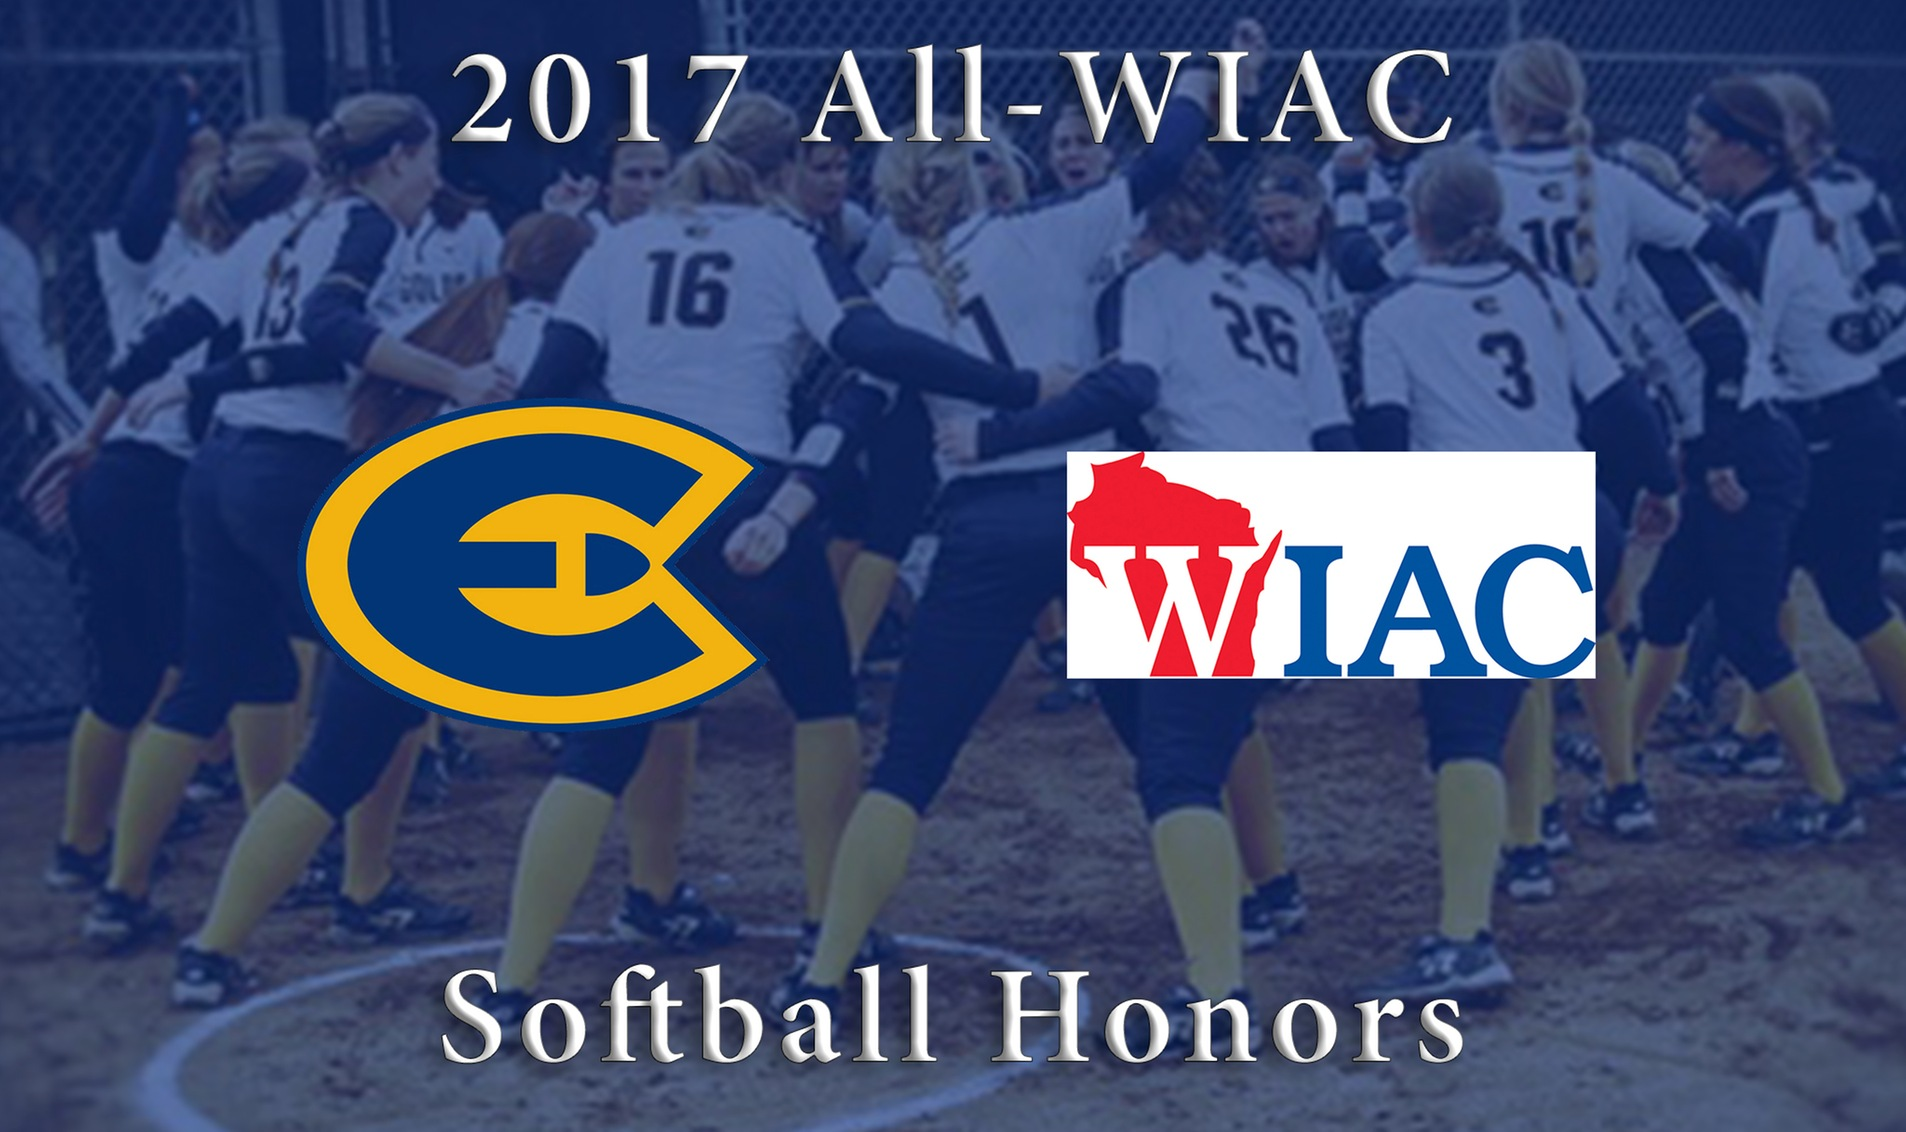 Six Blugolds receive All-WIAC softball recognition